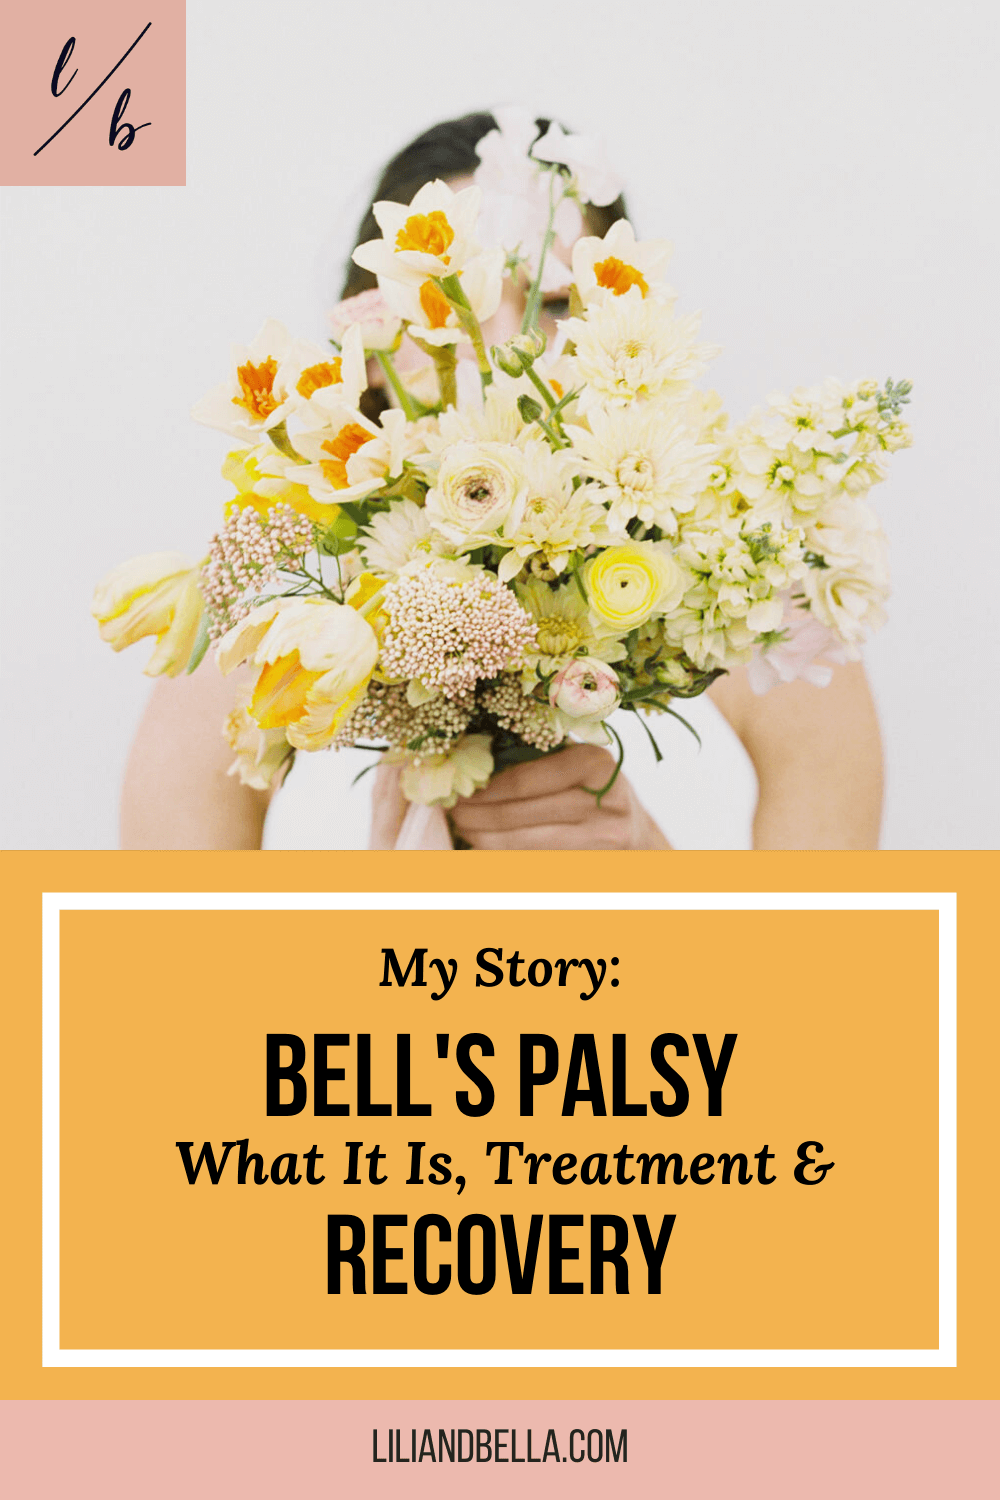 A personal story about Bell's Palsy treatment and recovery.